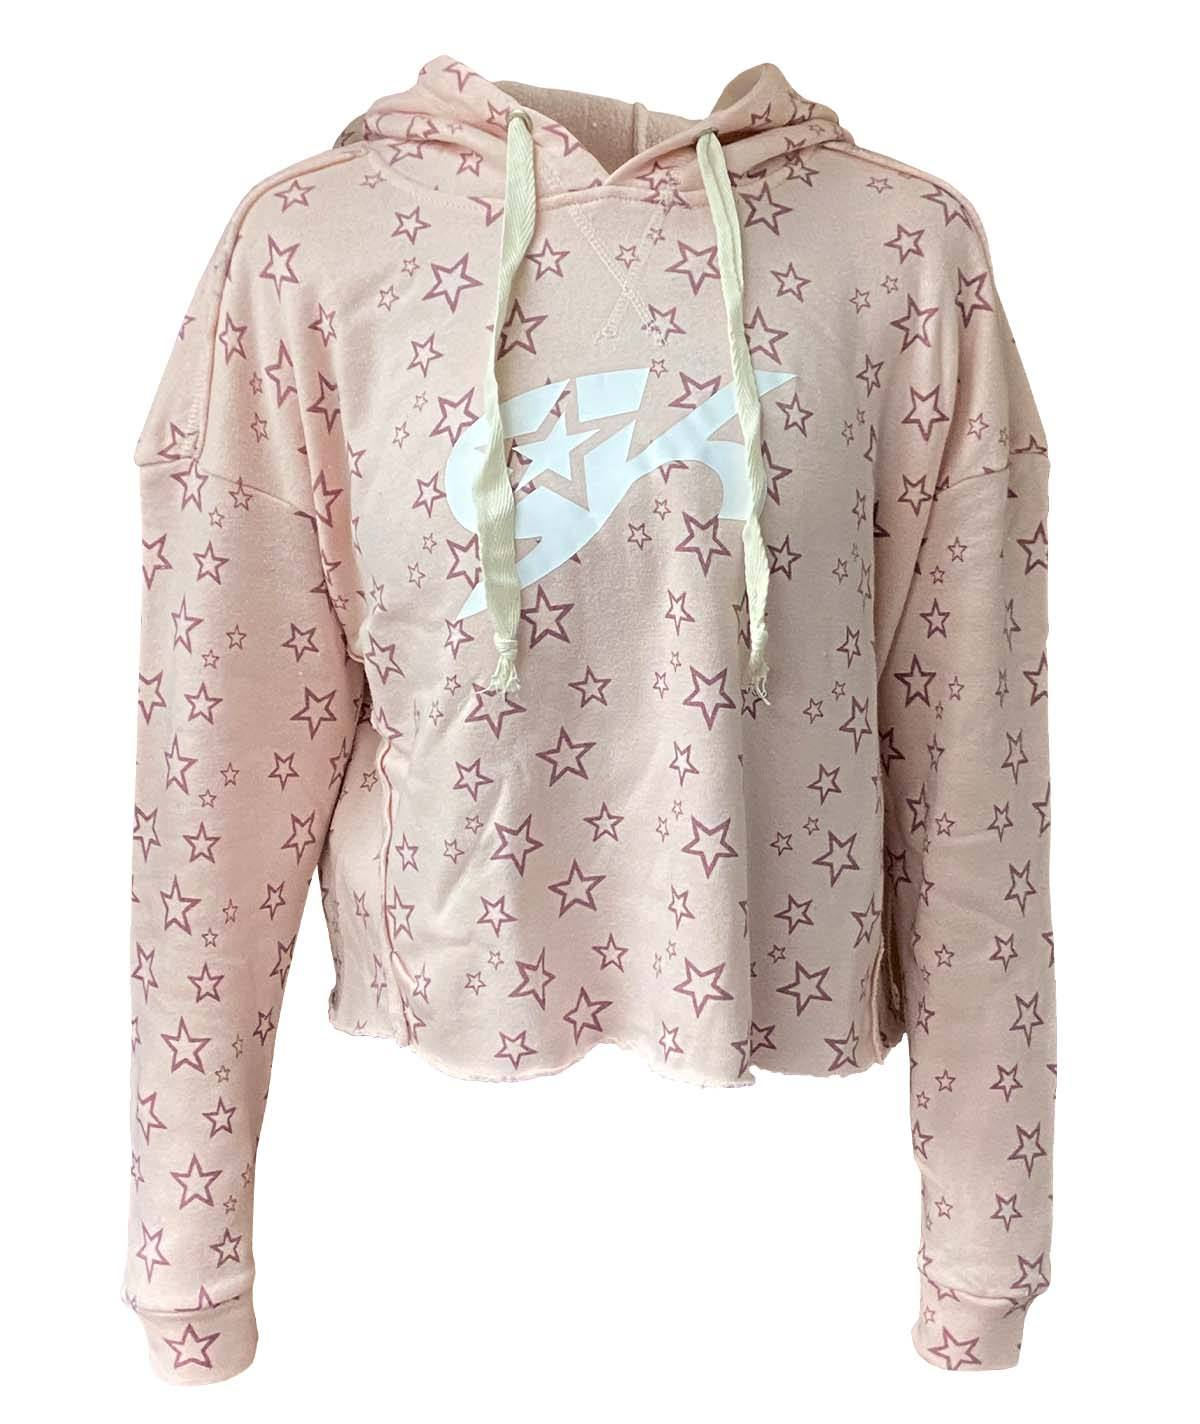 GK All Star Pink Starry Hoodie